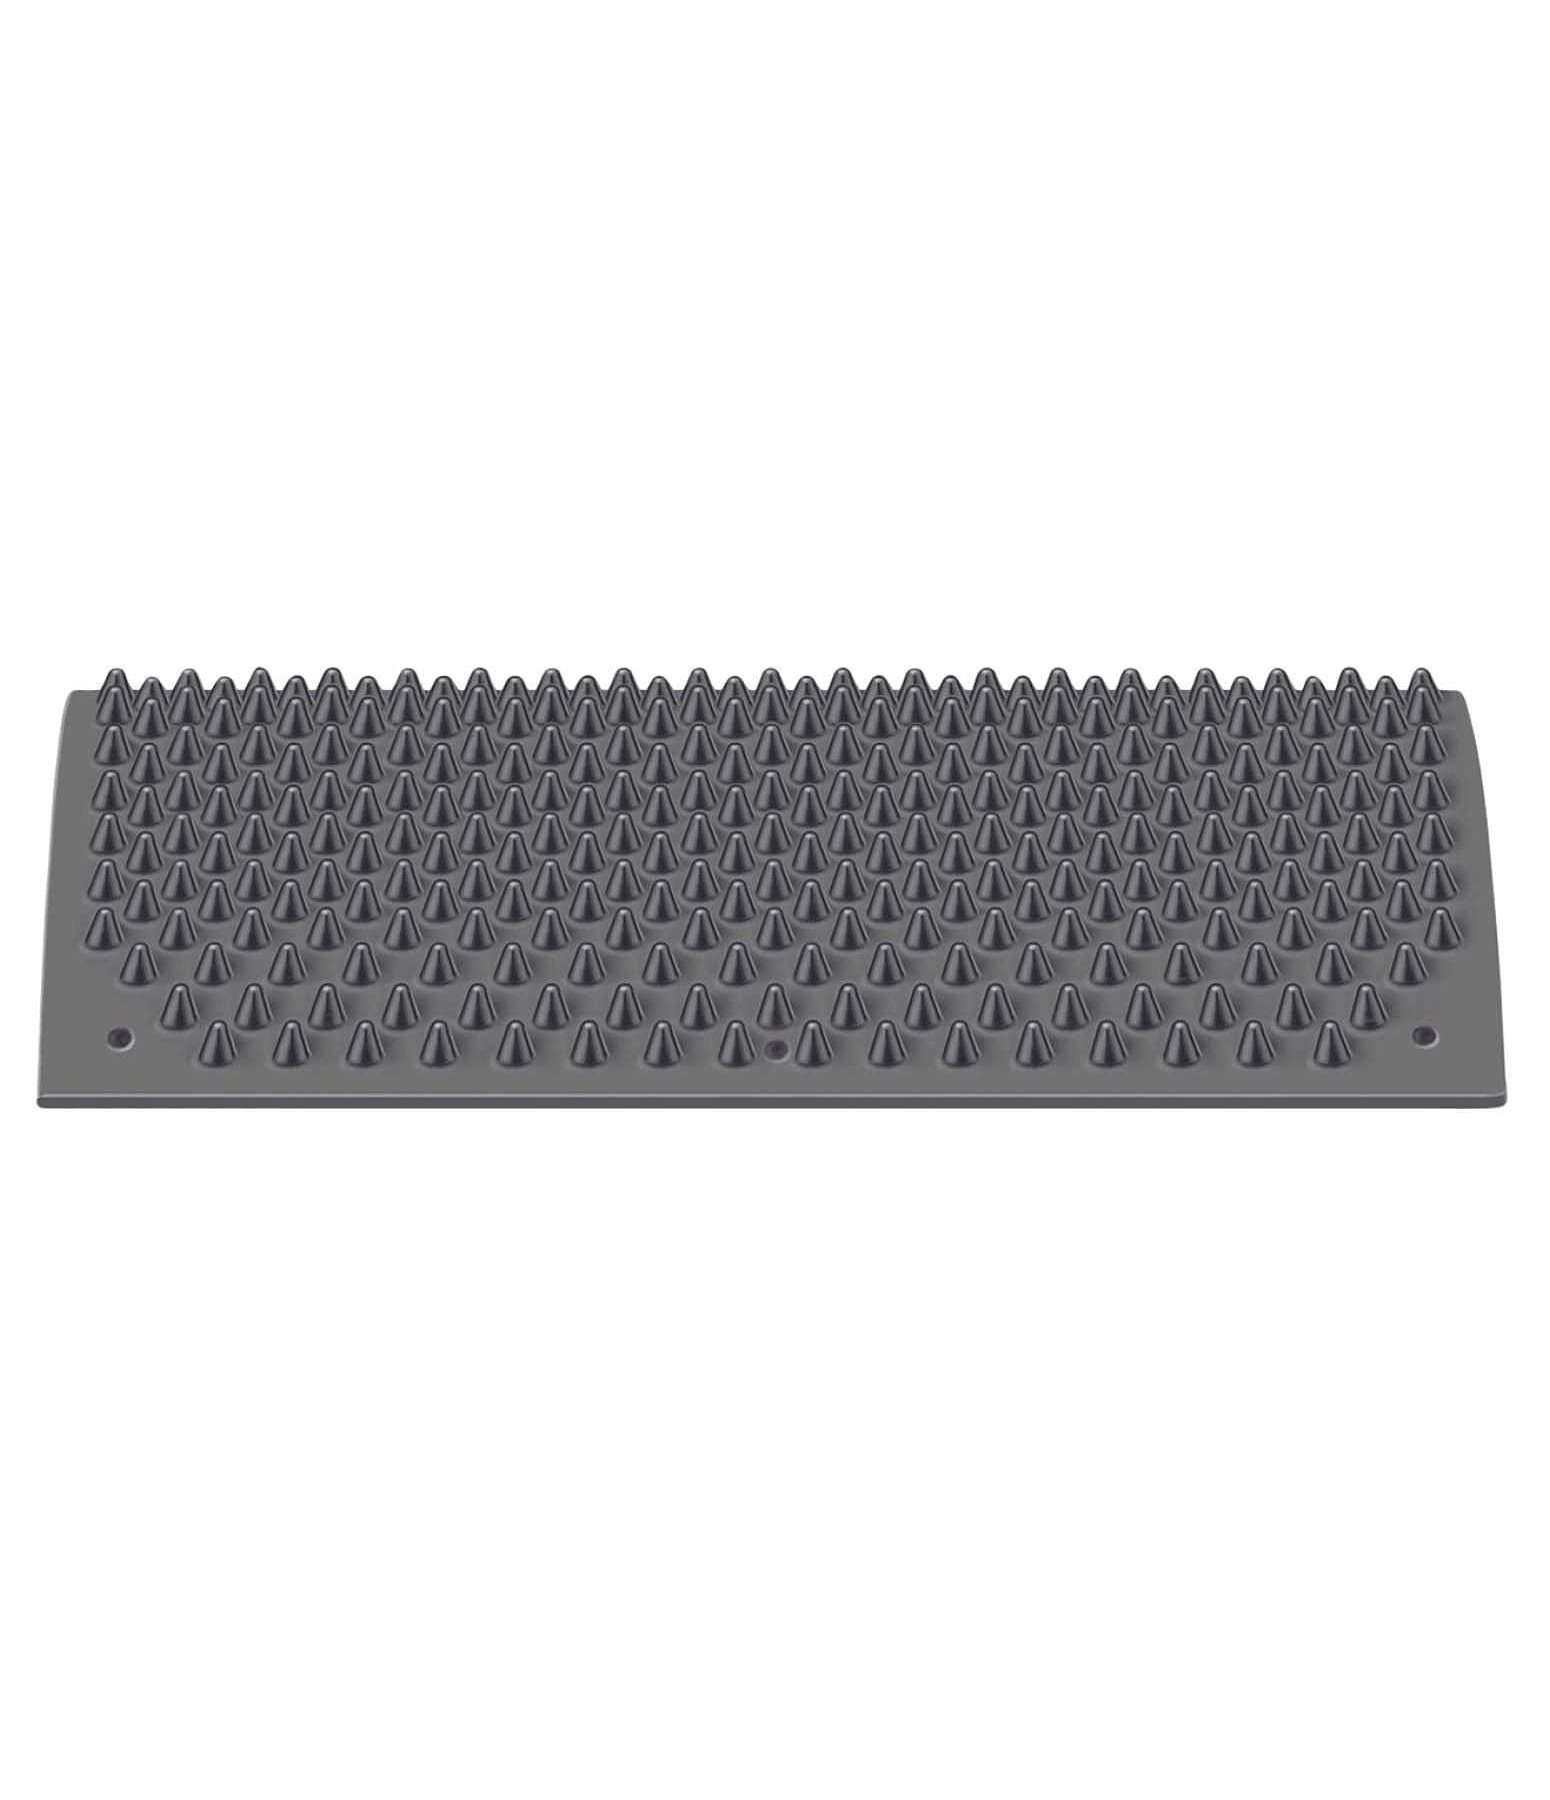 Grooming and Massage Mat